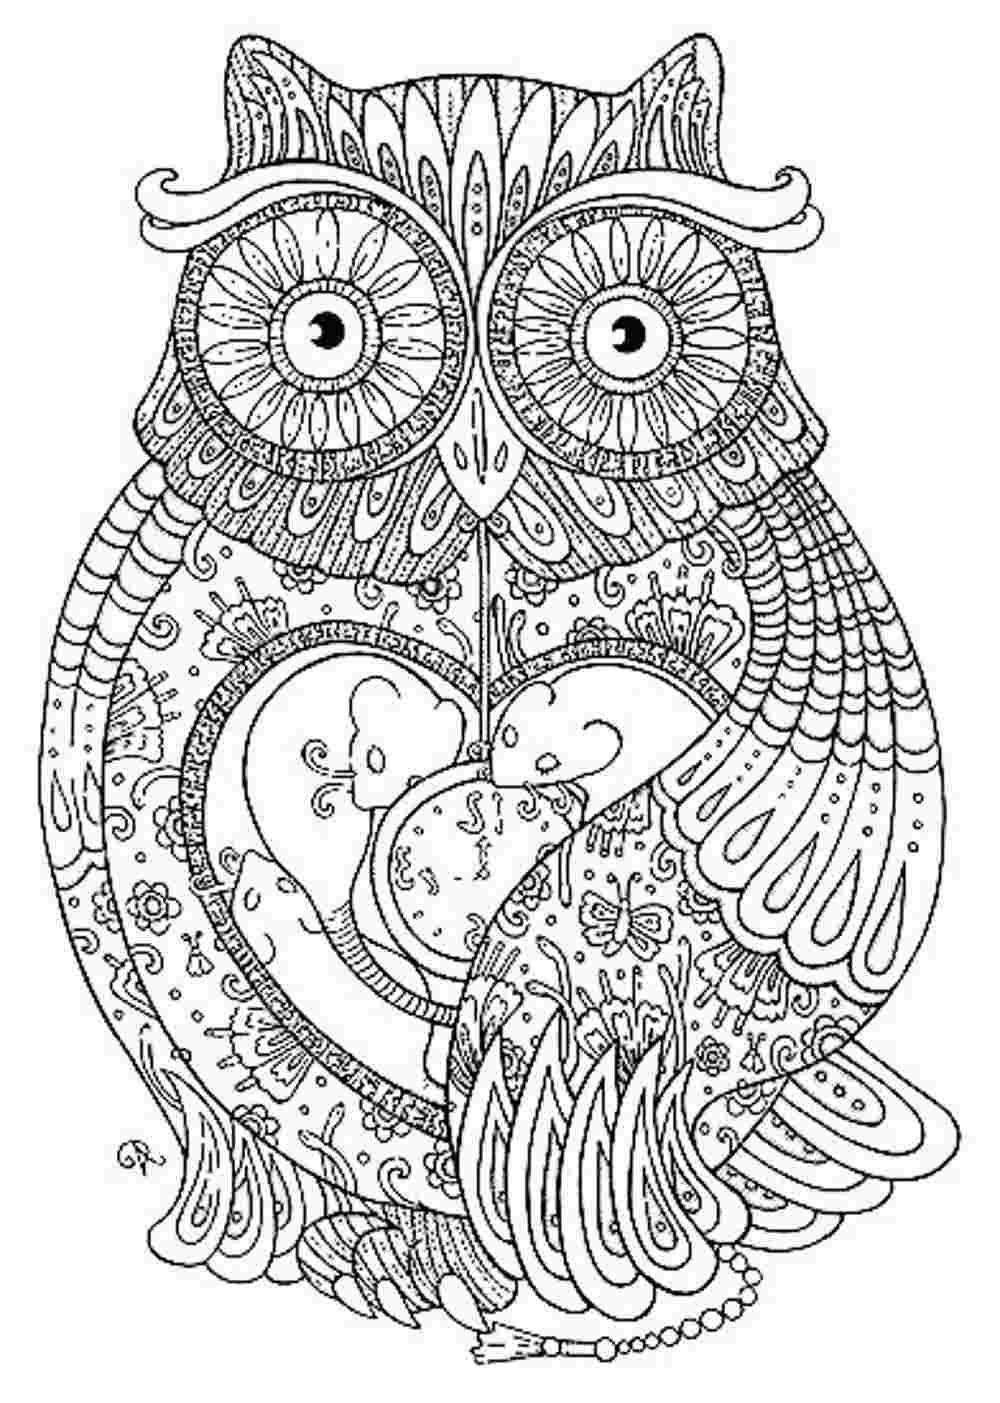 Animal Mandala Coloring Pages To And Print For